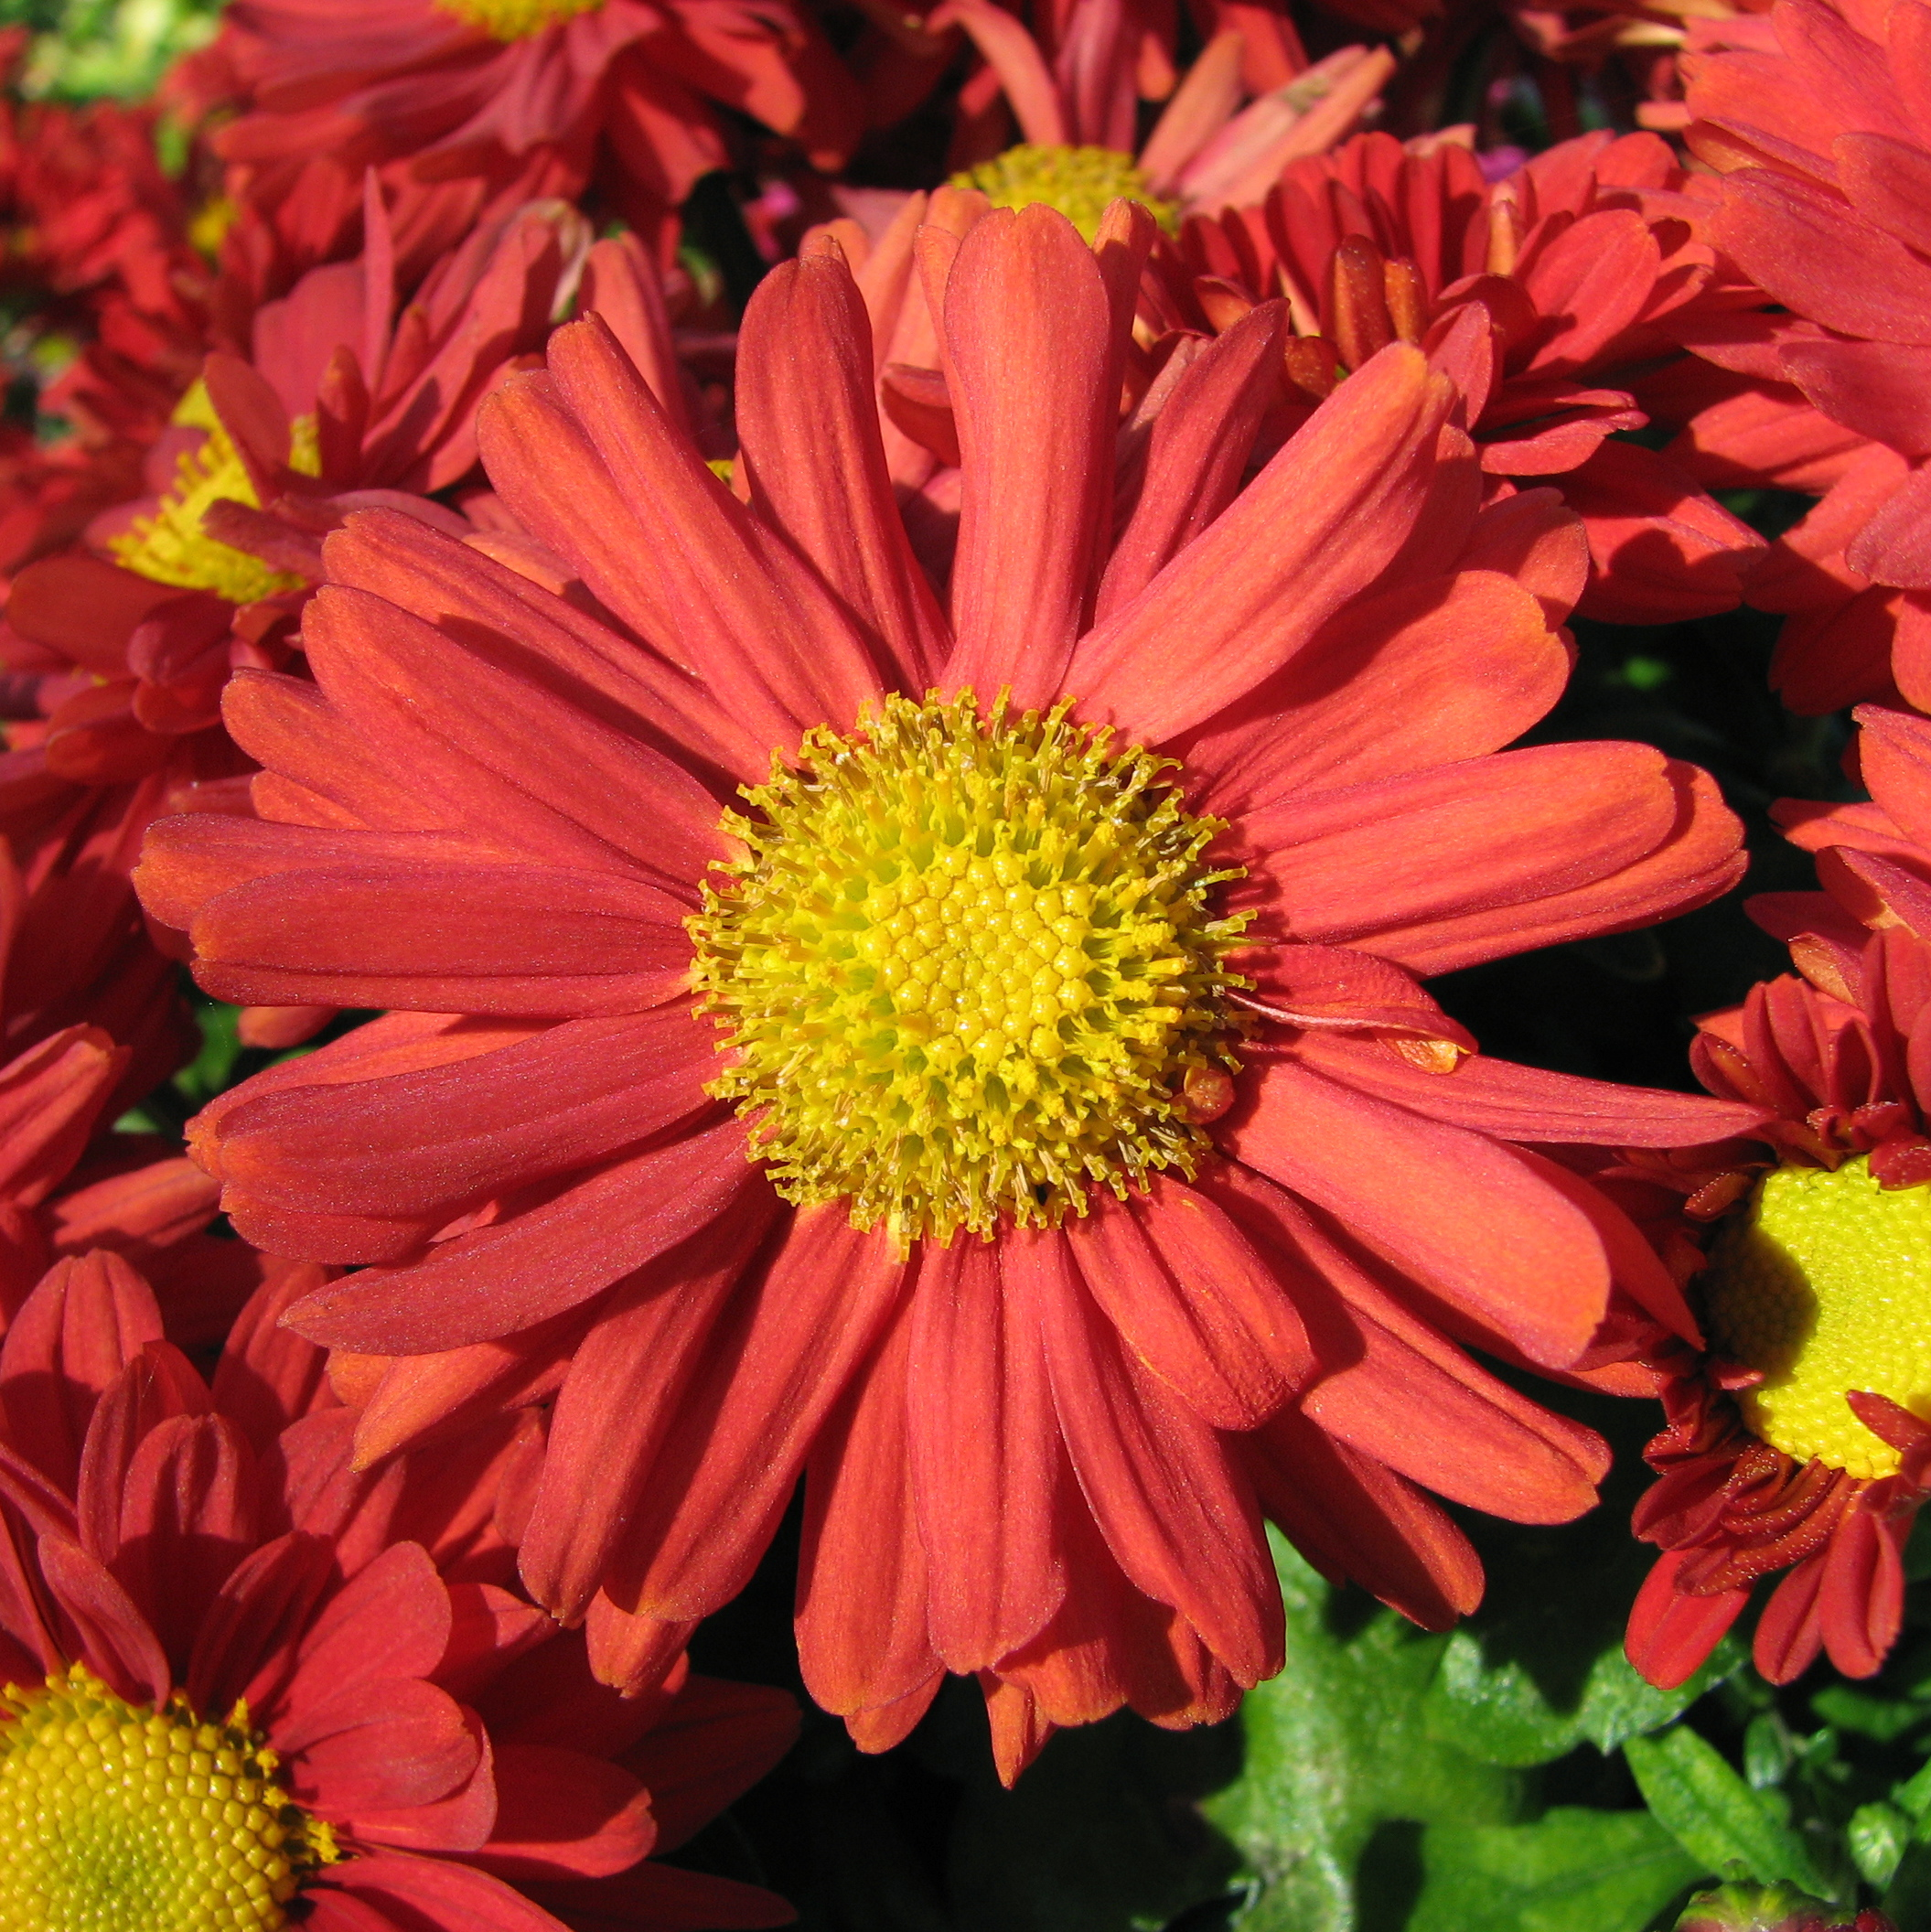 39 Sunday 39 S Child 39 Lives At Annie 39 S House Birth Flowers And